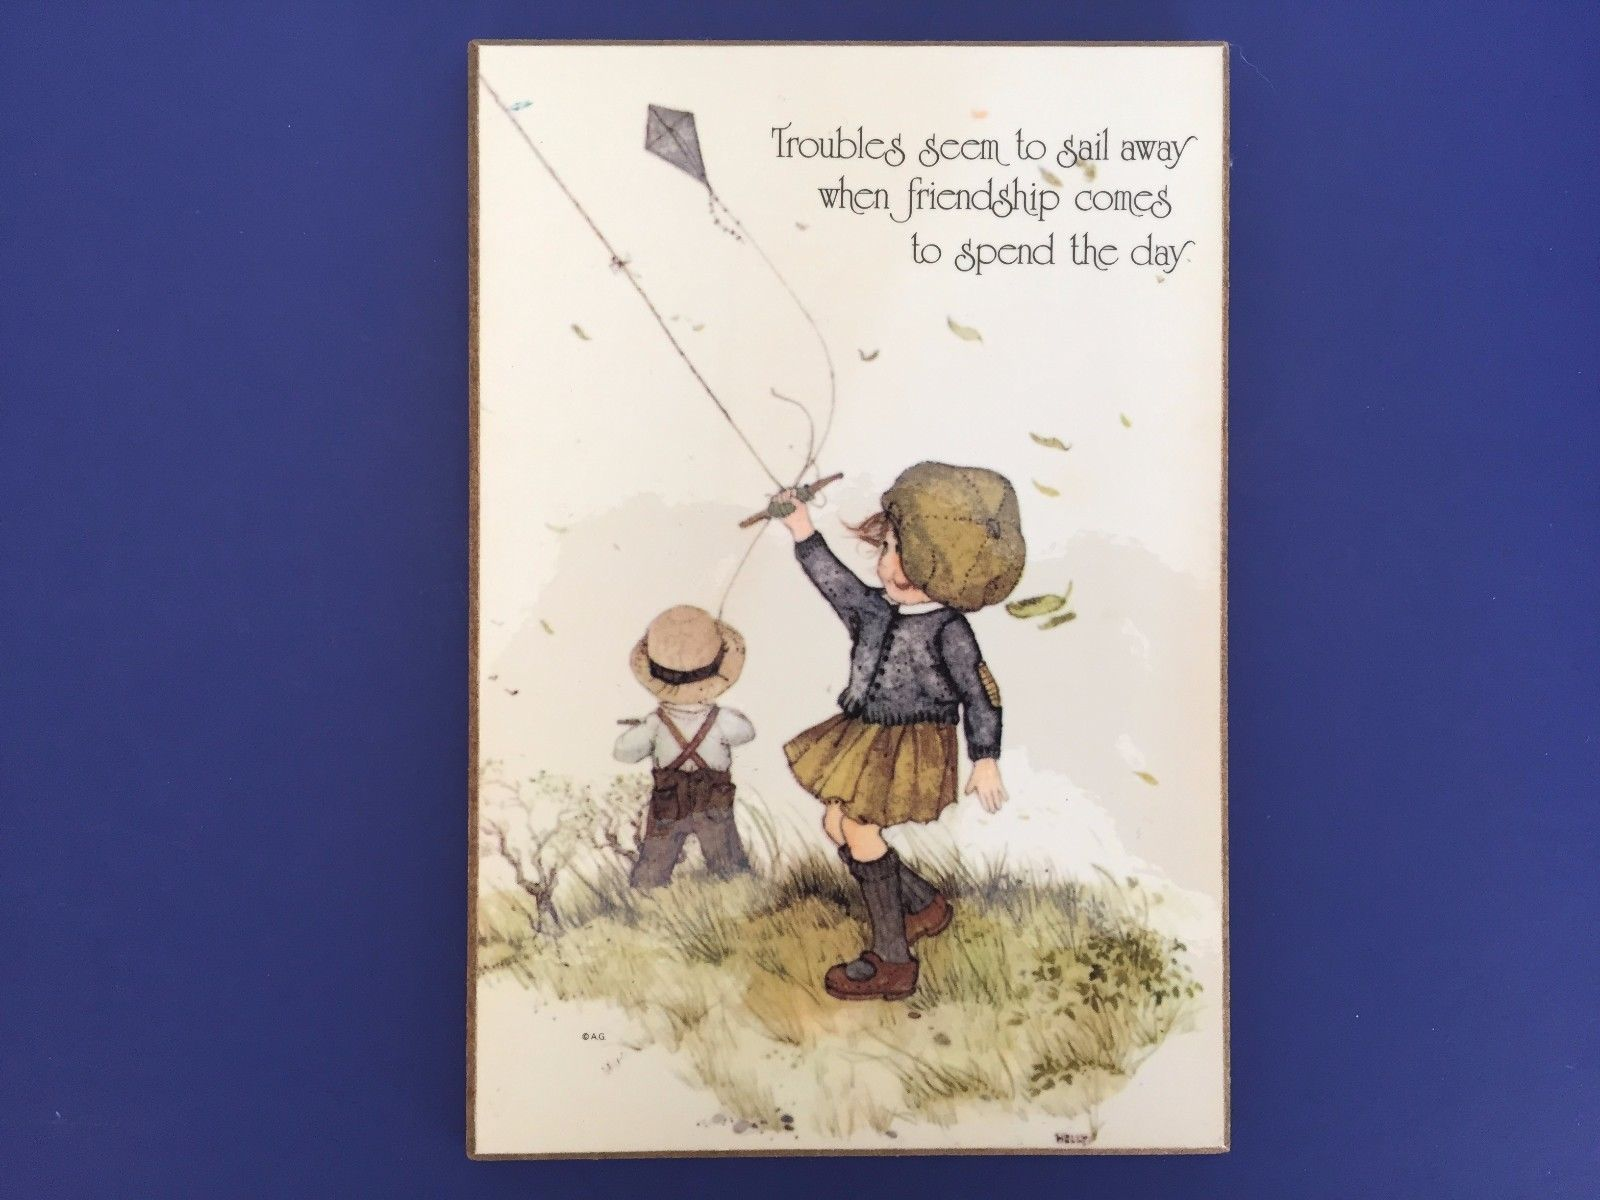 American greetings plaque 3 listings american greetings troubles seem to sail away wall hangingplaque 425 901 gbp kristyandbryce Choice Image